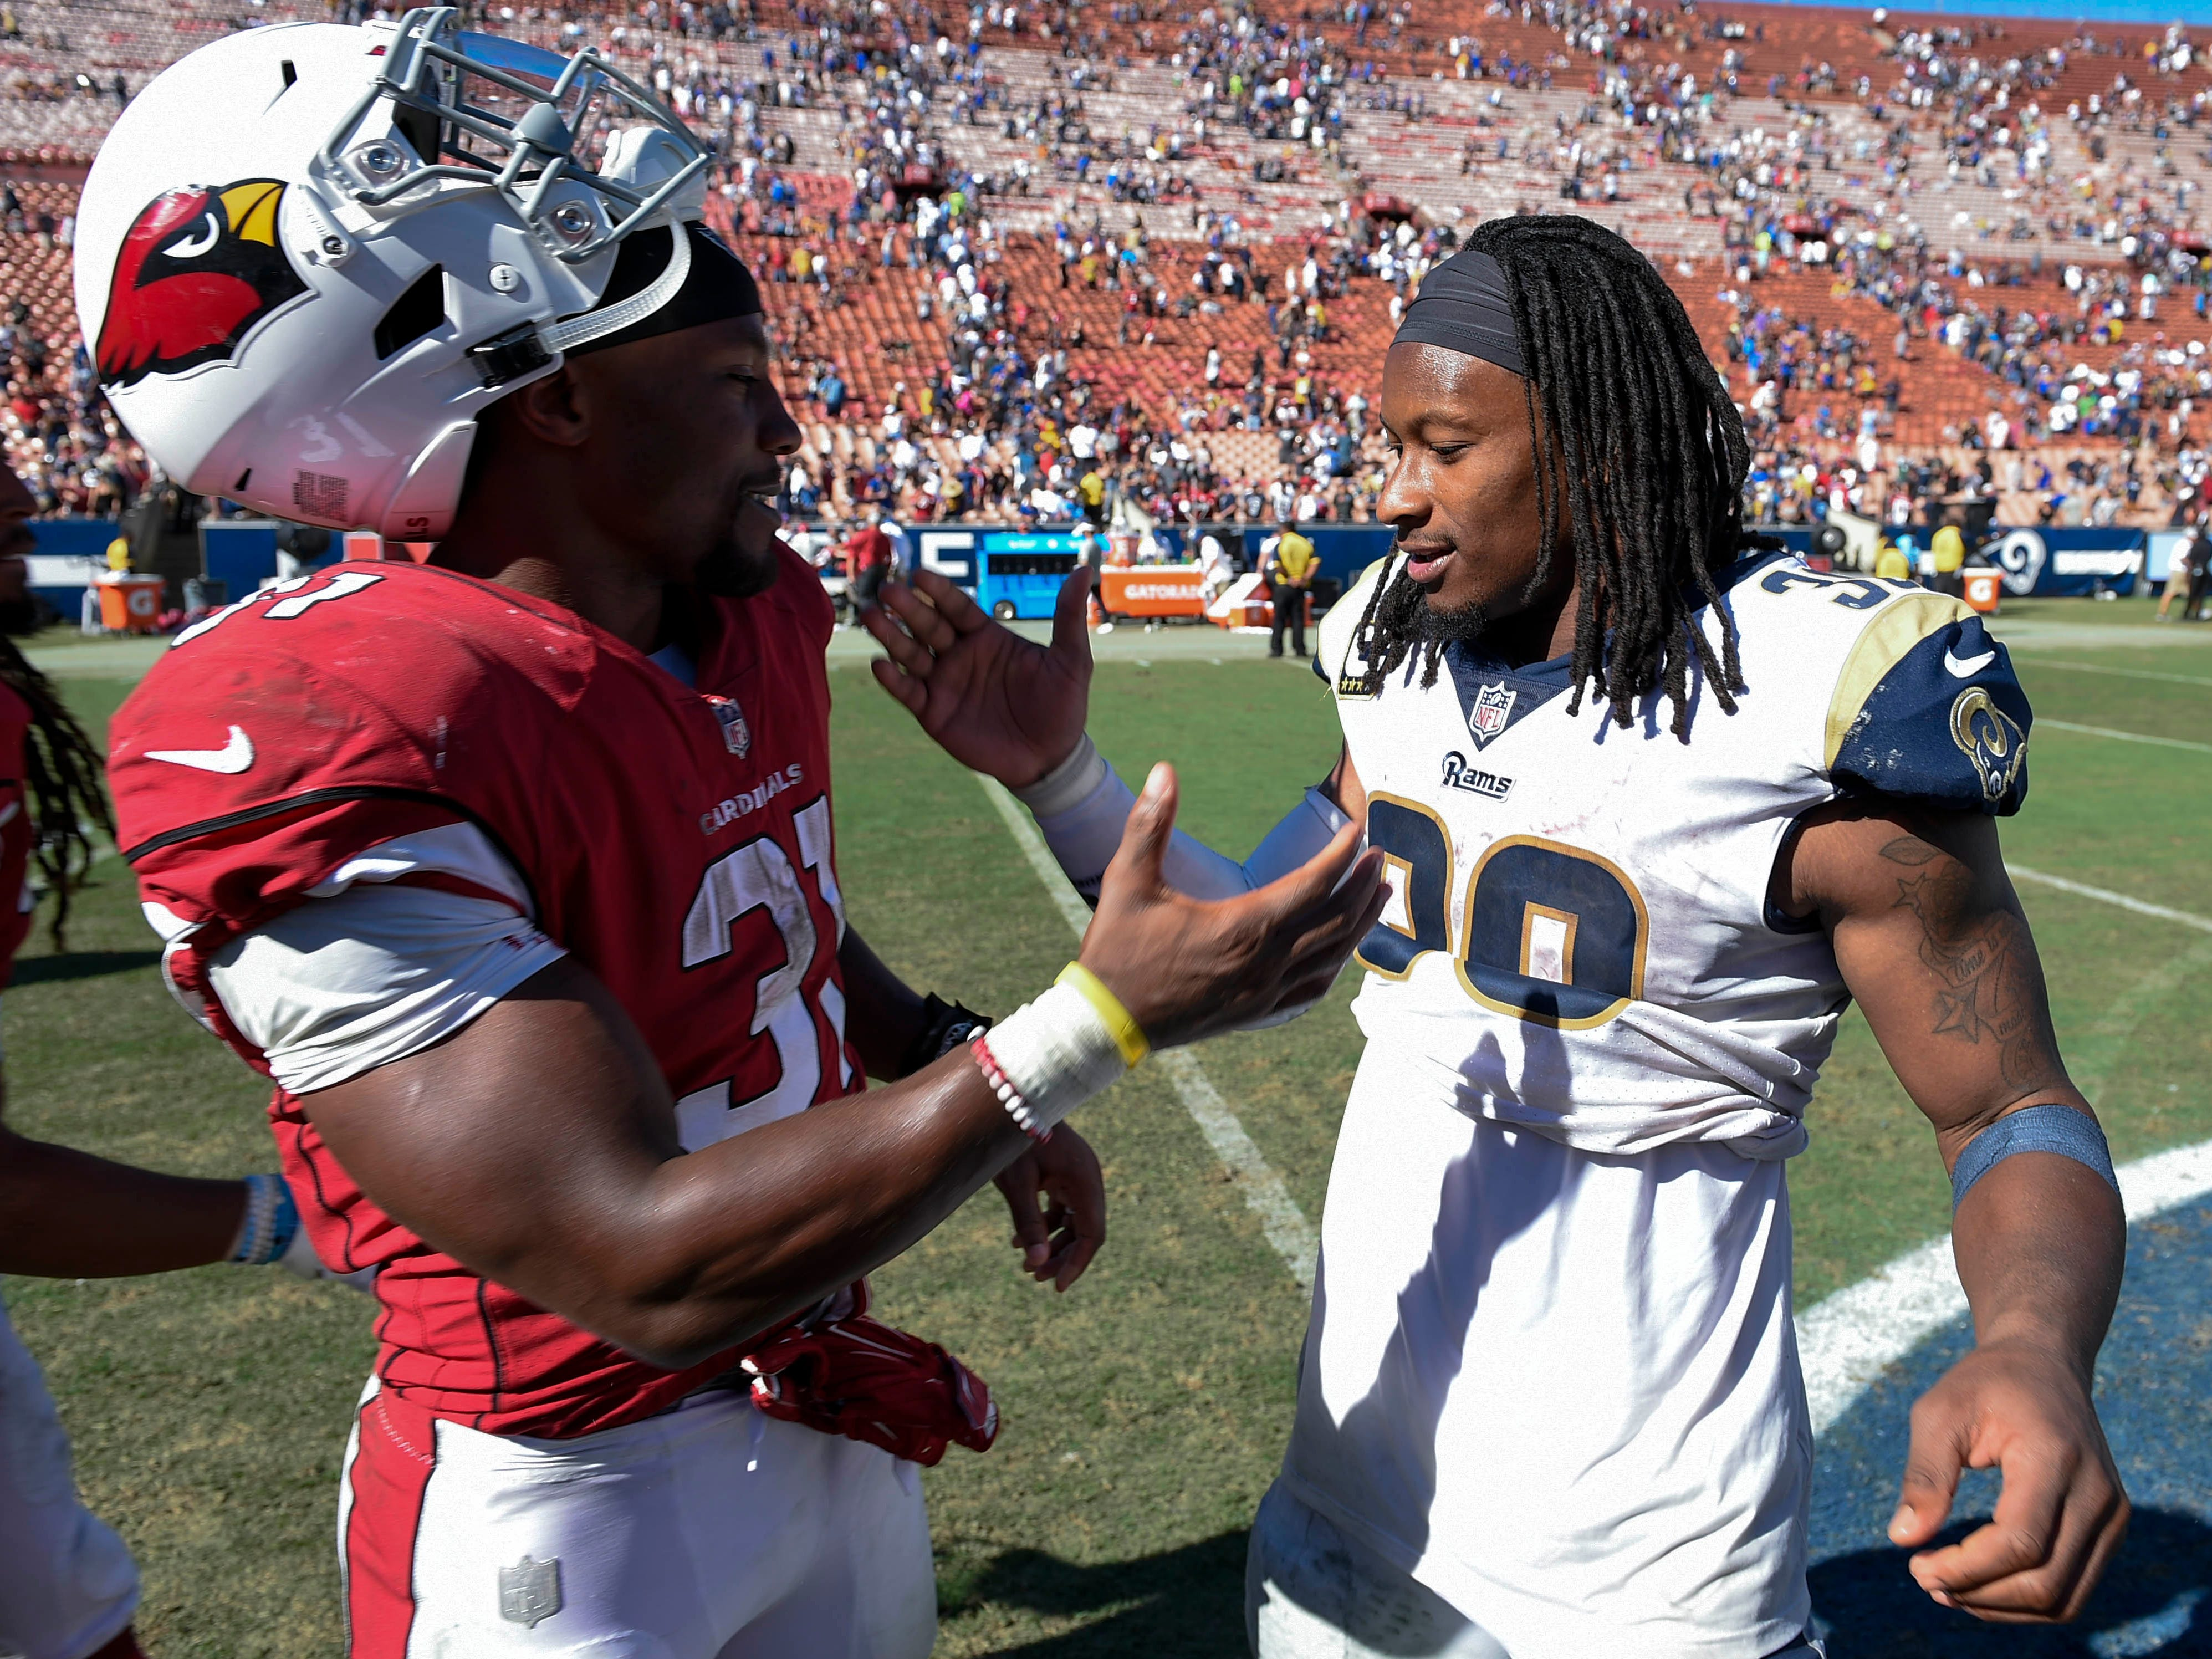 Sep 16, 2018; Los Angeles, CA, USA; Los Angeles Rams running back Todd Gurley II (right) and Arizona Cardinals running back David Johnson (31) meet after the game at Los Angeles Memorial Coliseum. Mandatory Credit: Kelvin Kuo-USA TODAY Sports